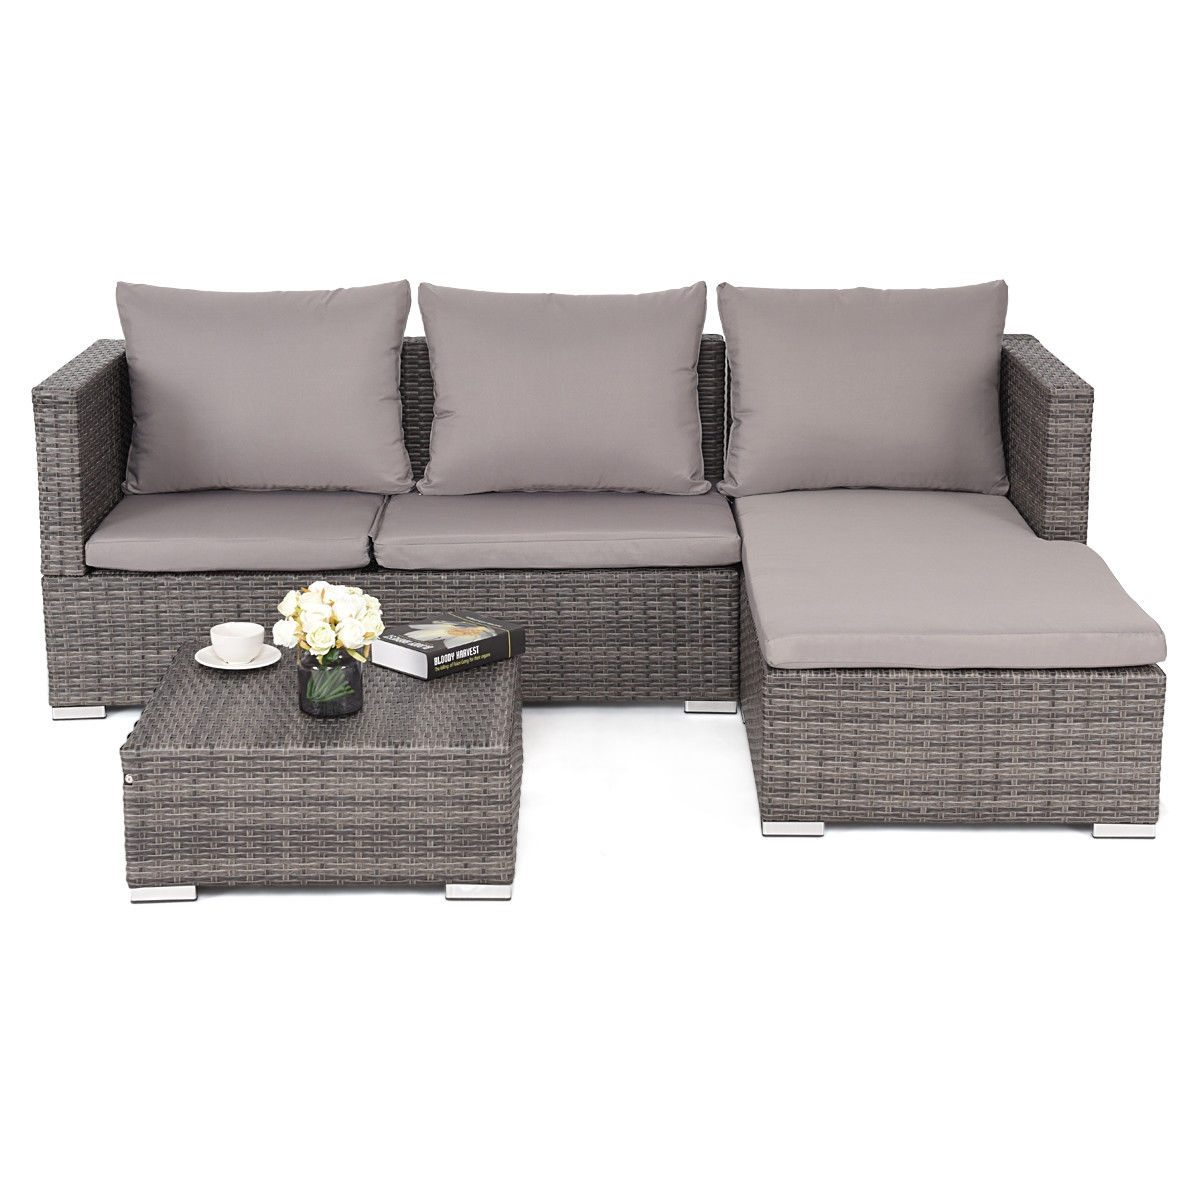 Rattan Sofa 3 Pcs Steel Frame Adjustable Seat Rattan Wicker Sofa Furniture Set